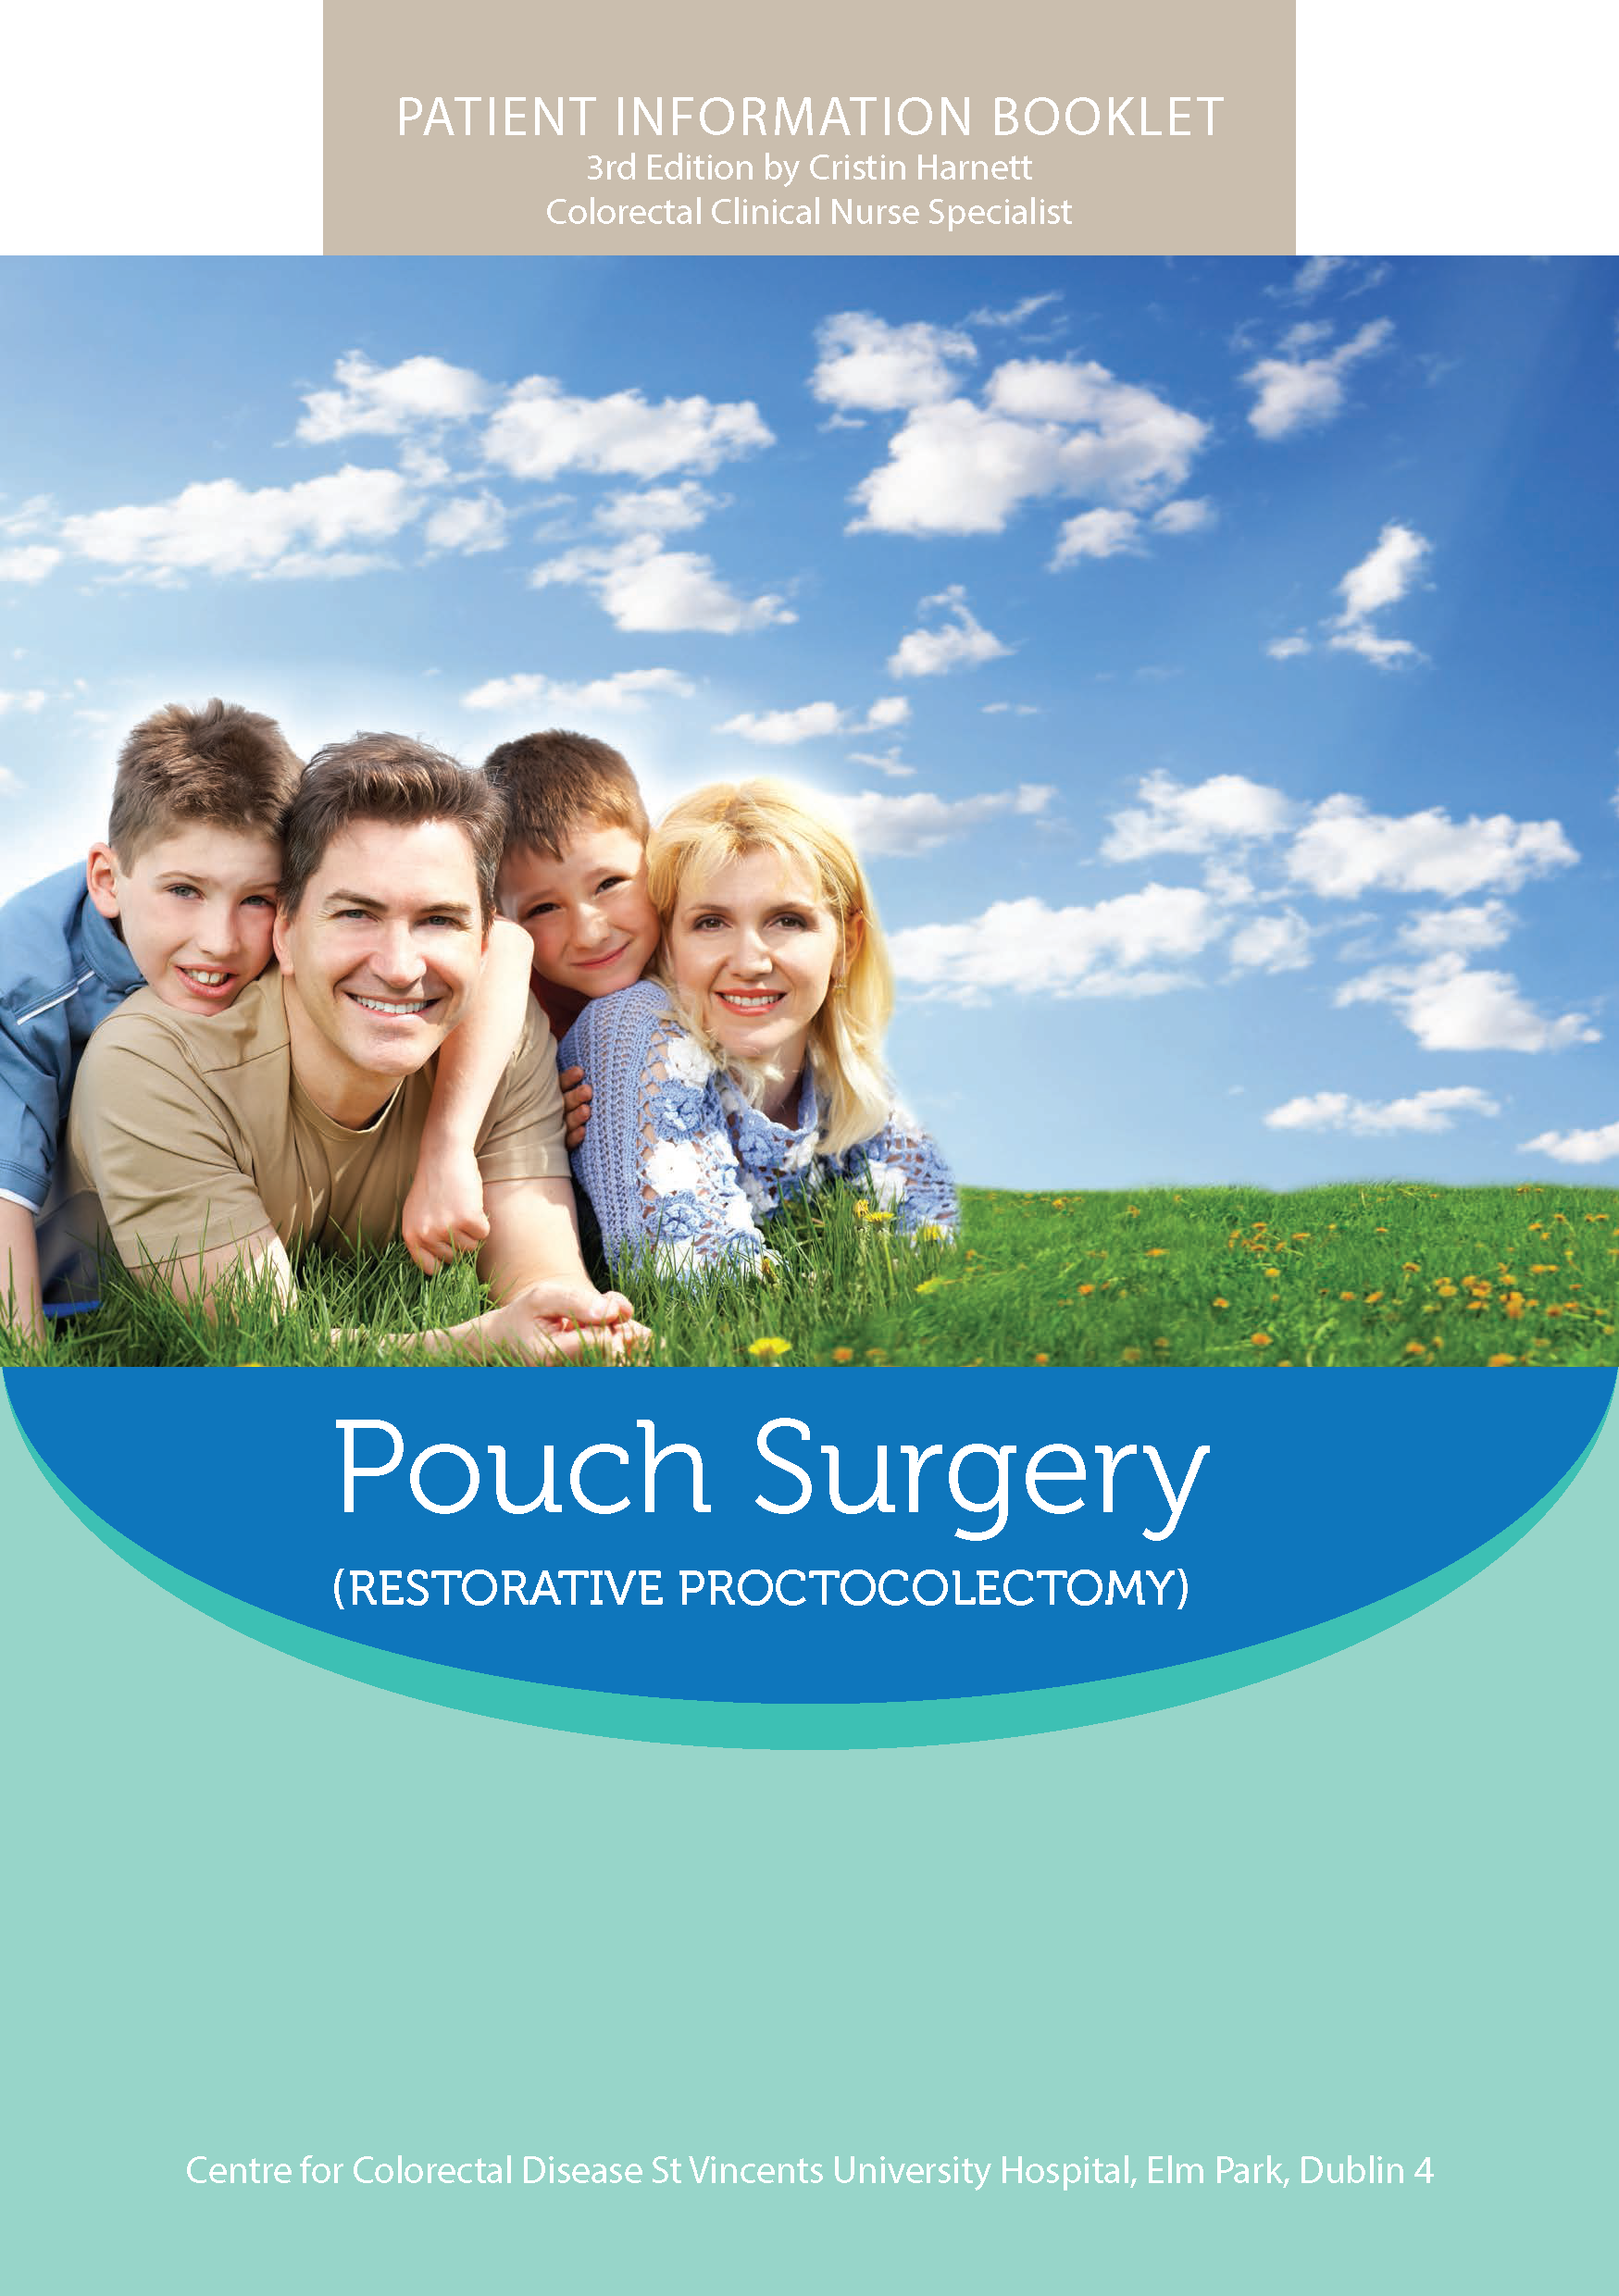 Patient Information on Pouch Surgery